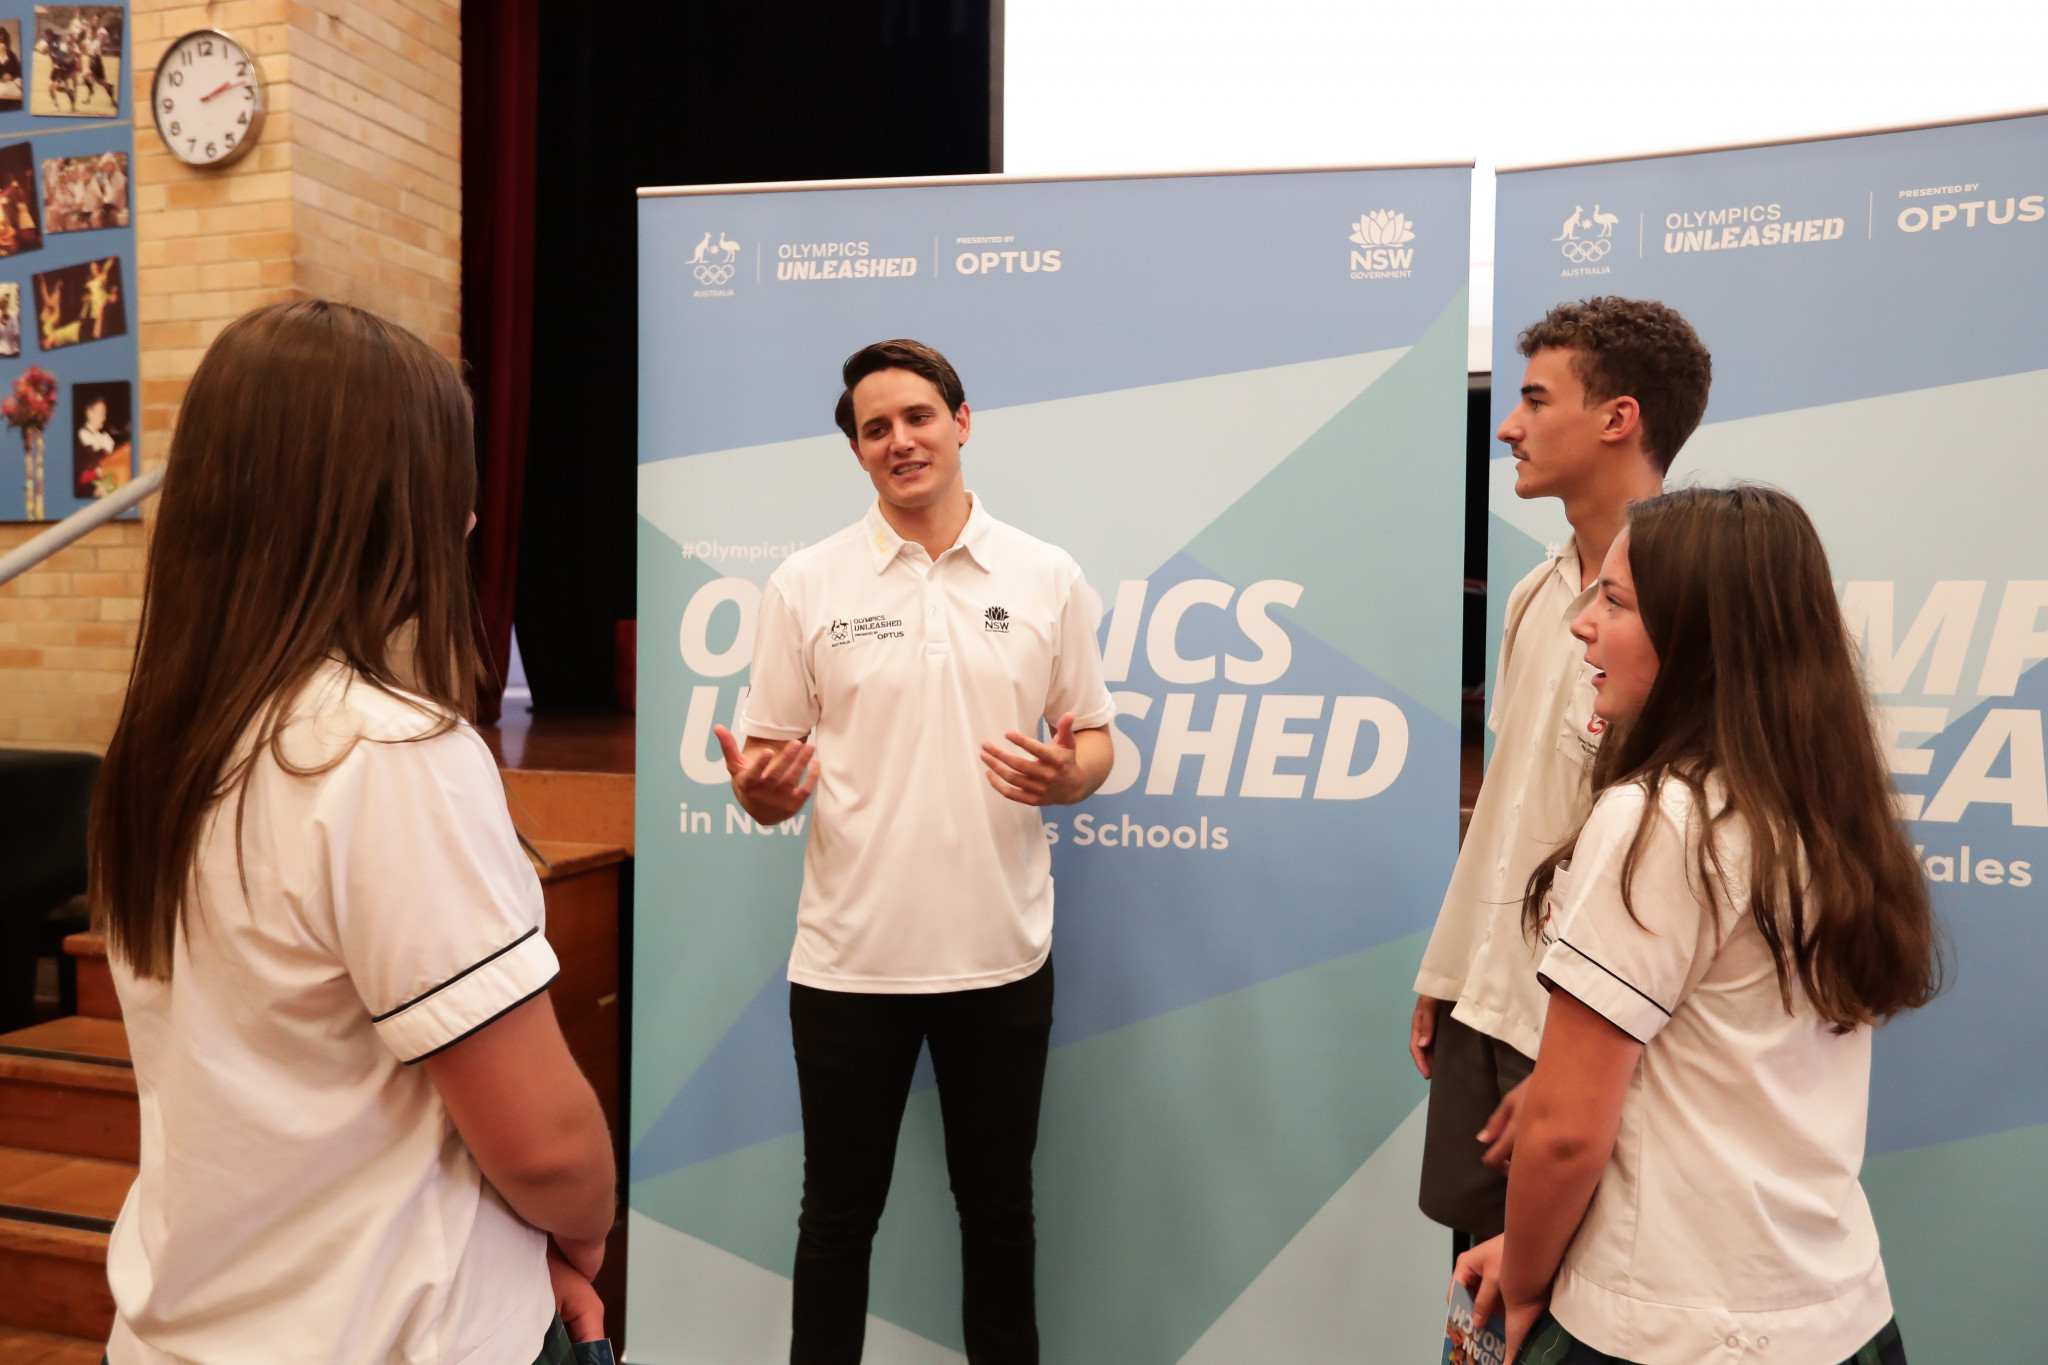 Water polo player Aidan Roach visited students at the Gymea Technology High School ©Olympics Unleashed